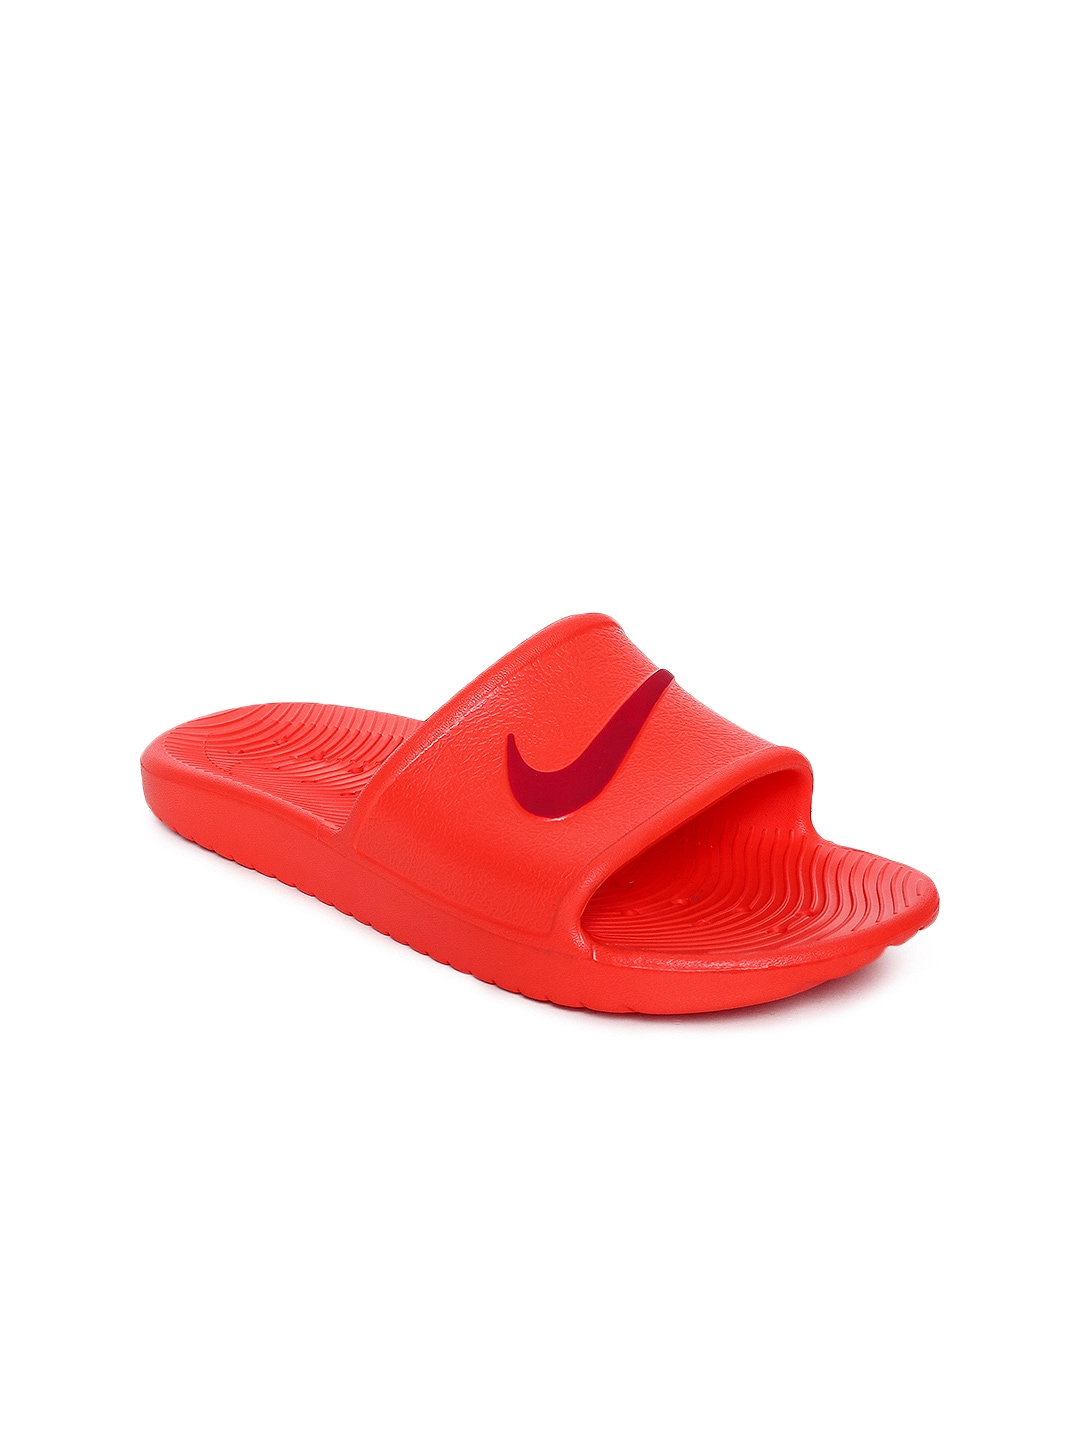 a001fb71b Women s Nike Flip Flops - Buy Nike Flip Flops for Women Online in India